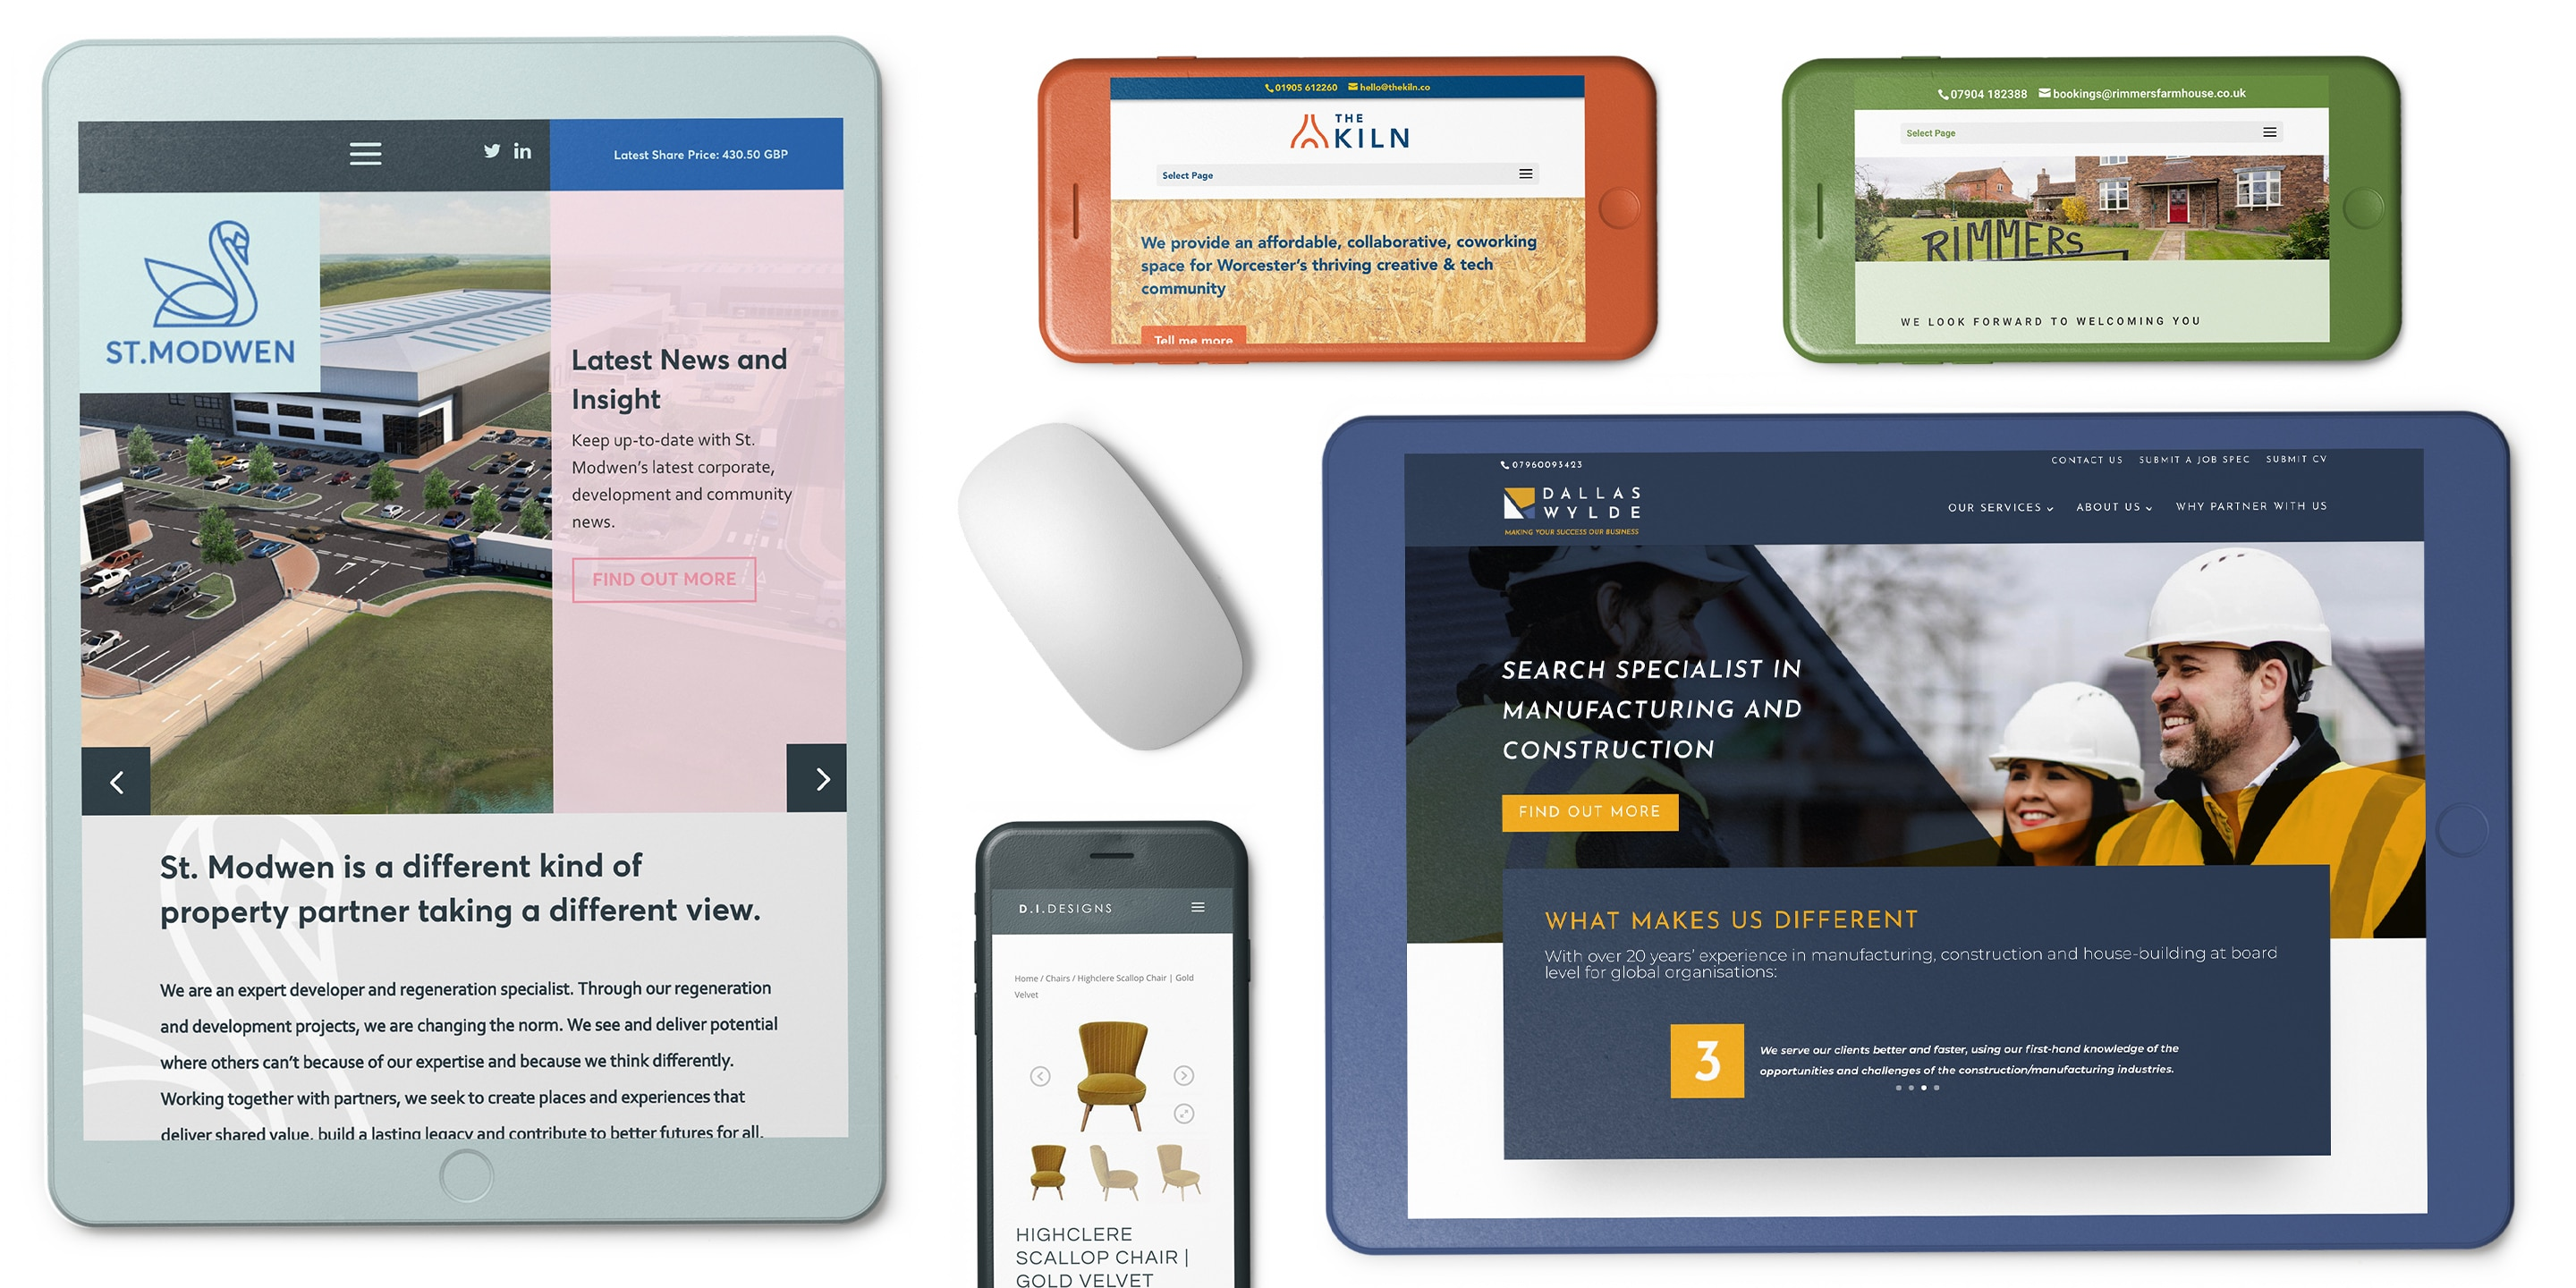 a collection of images showing great web design images